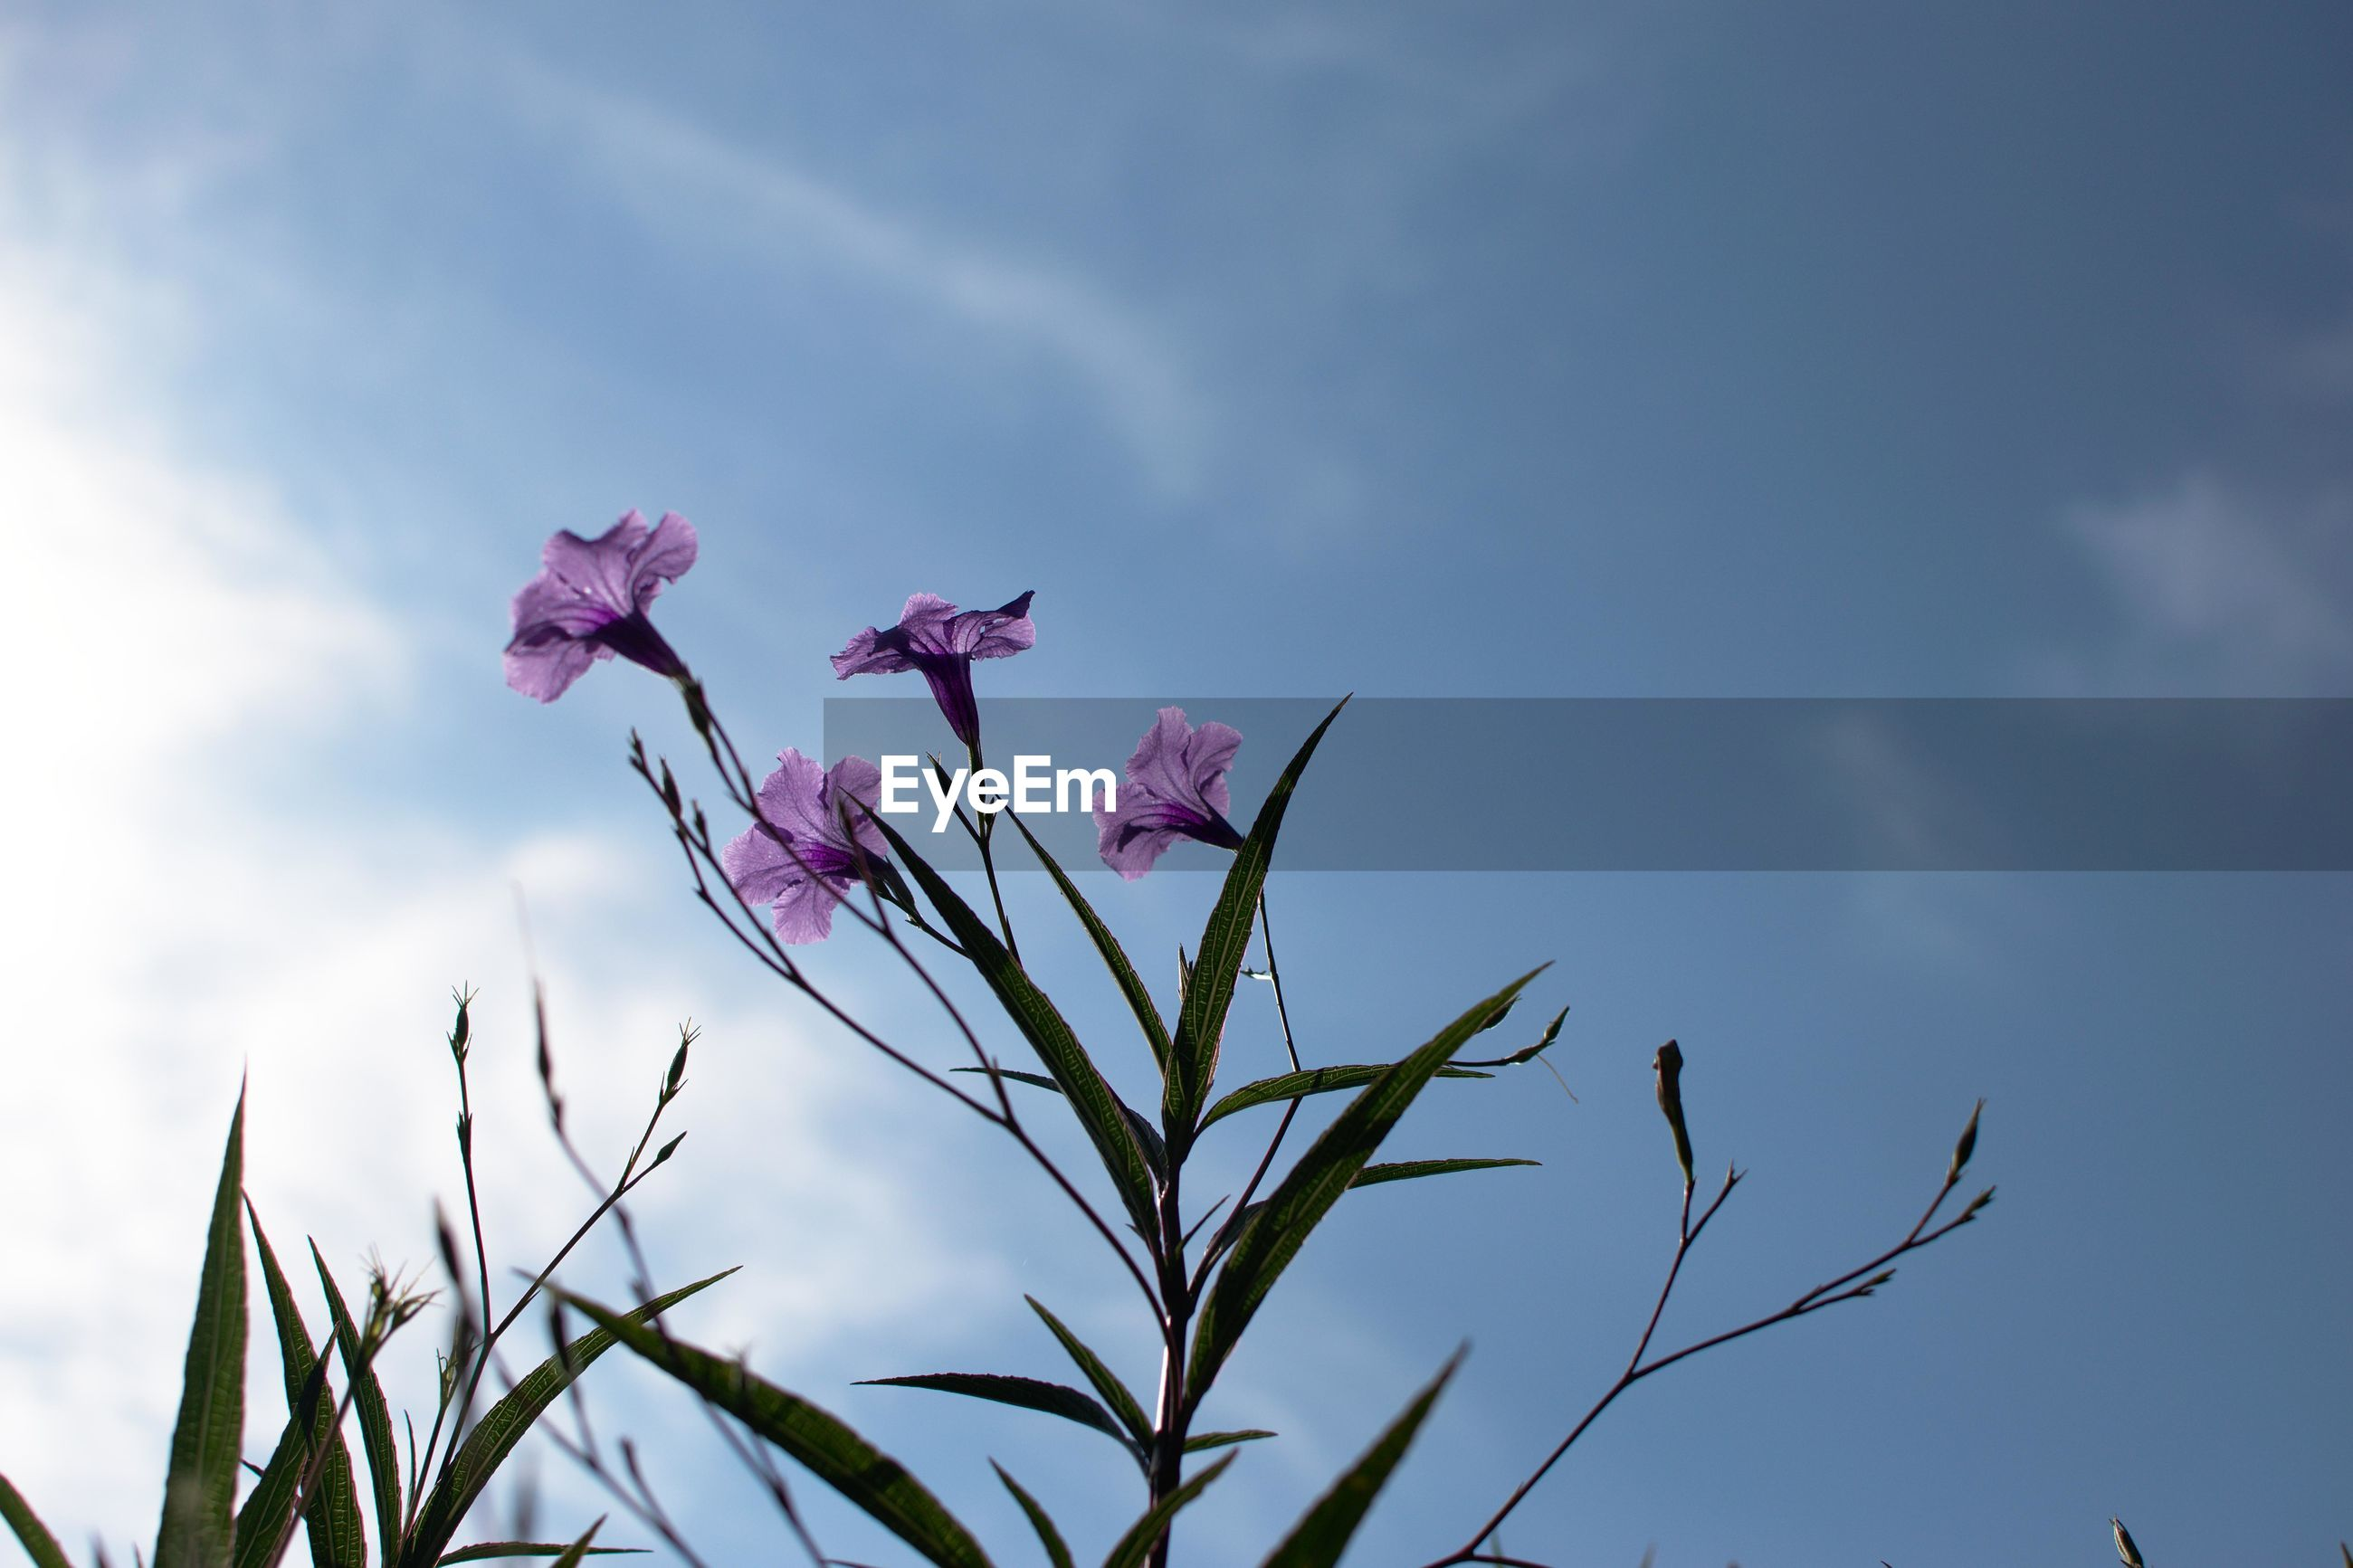 Low angle view of purple flowers blooming against sky